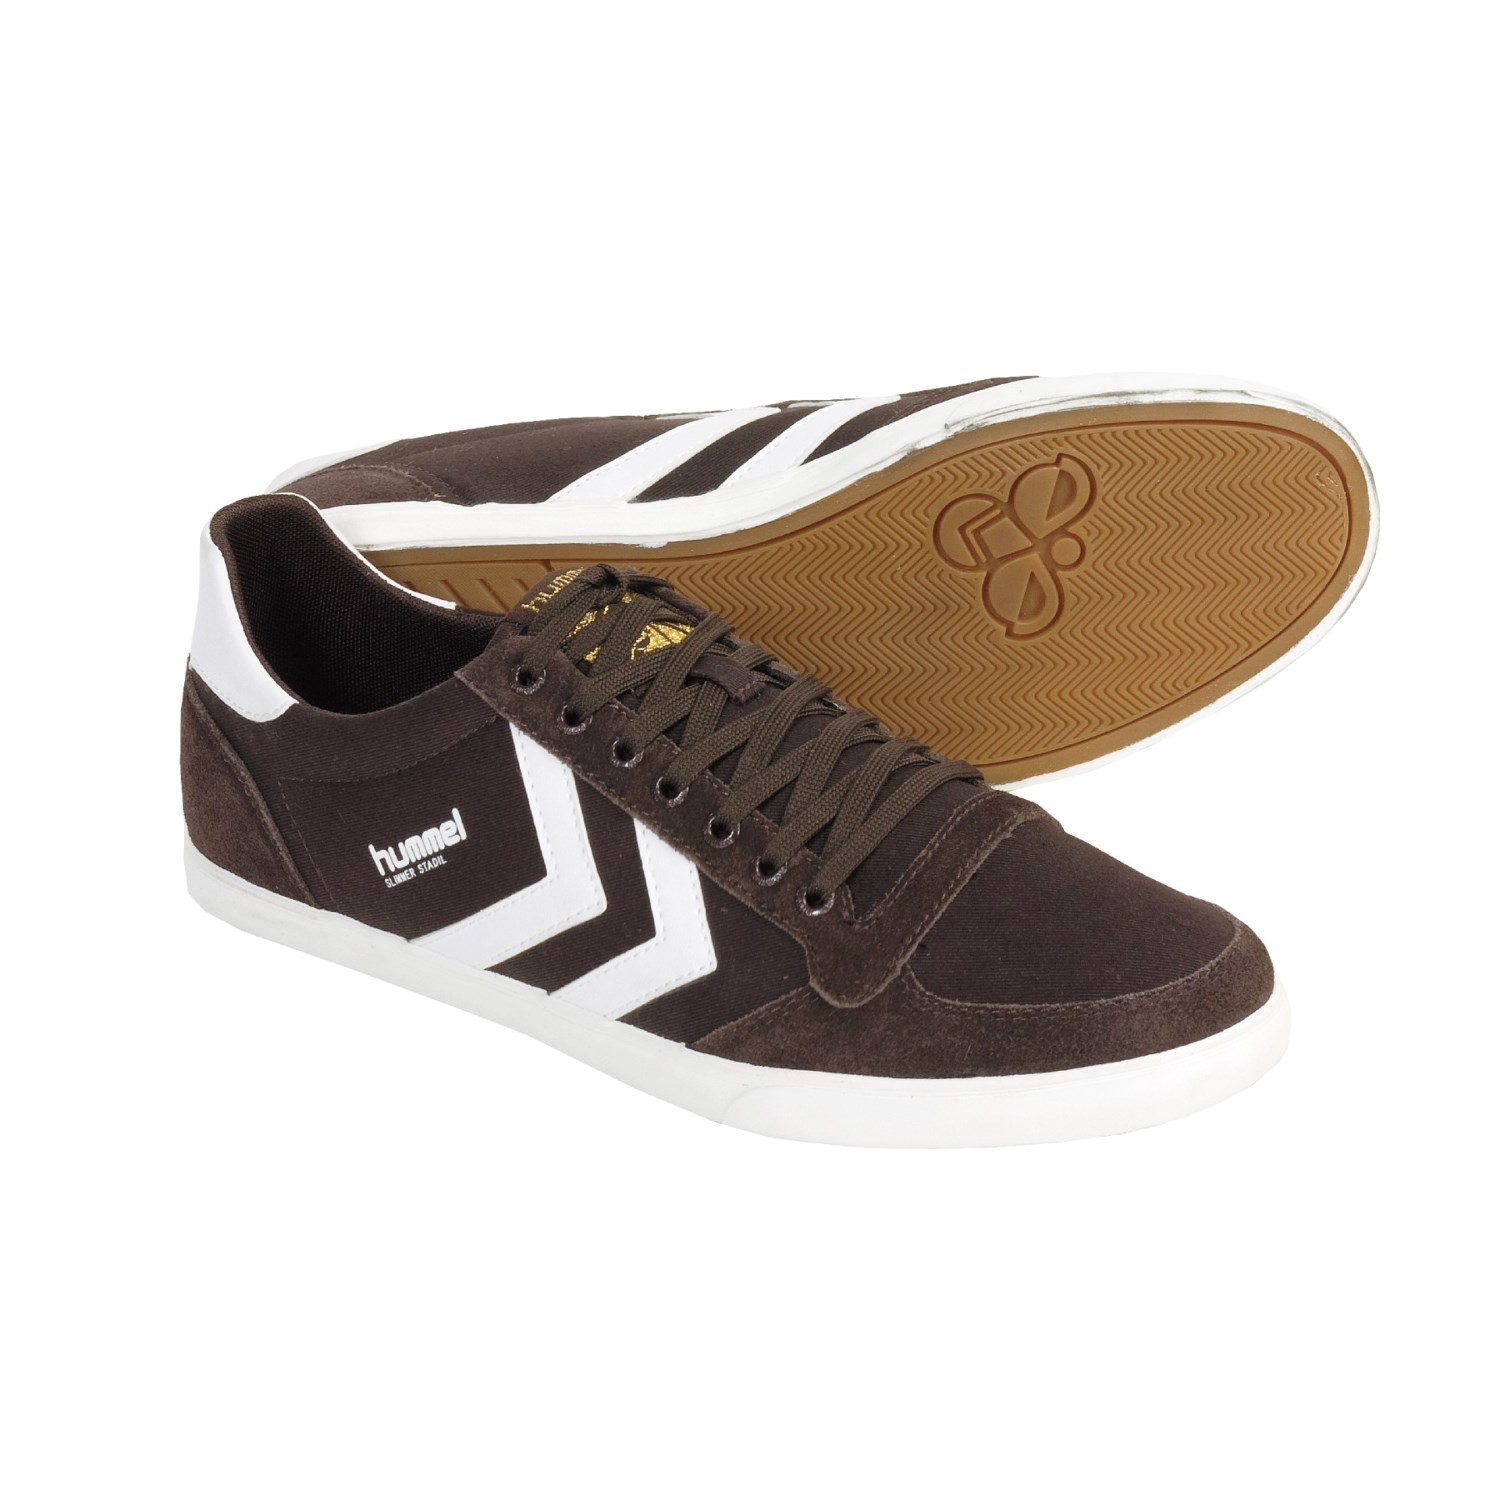 hummel stadil slimmer low top shoes canvas sneakers